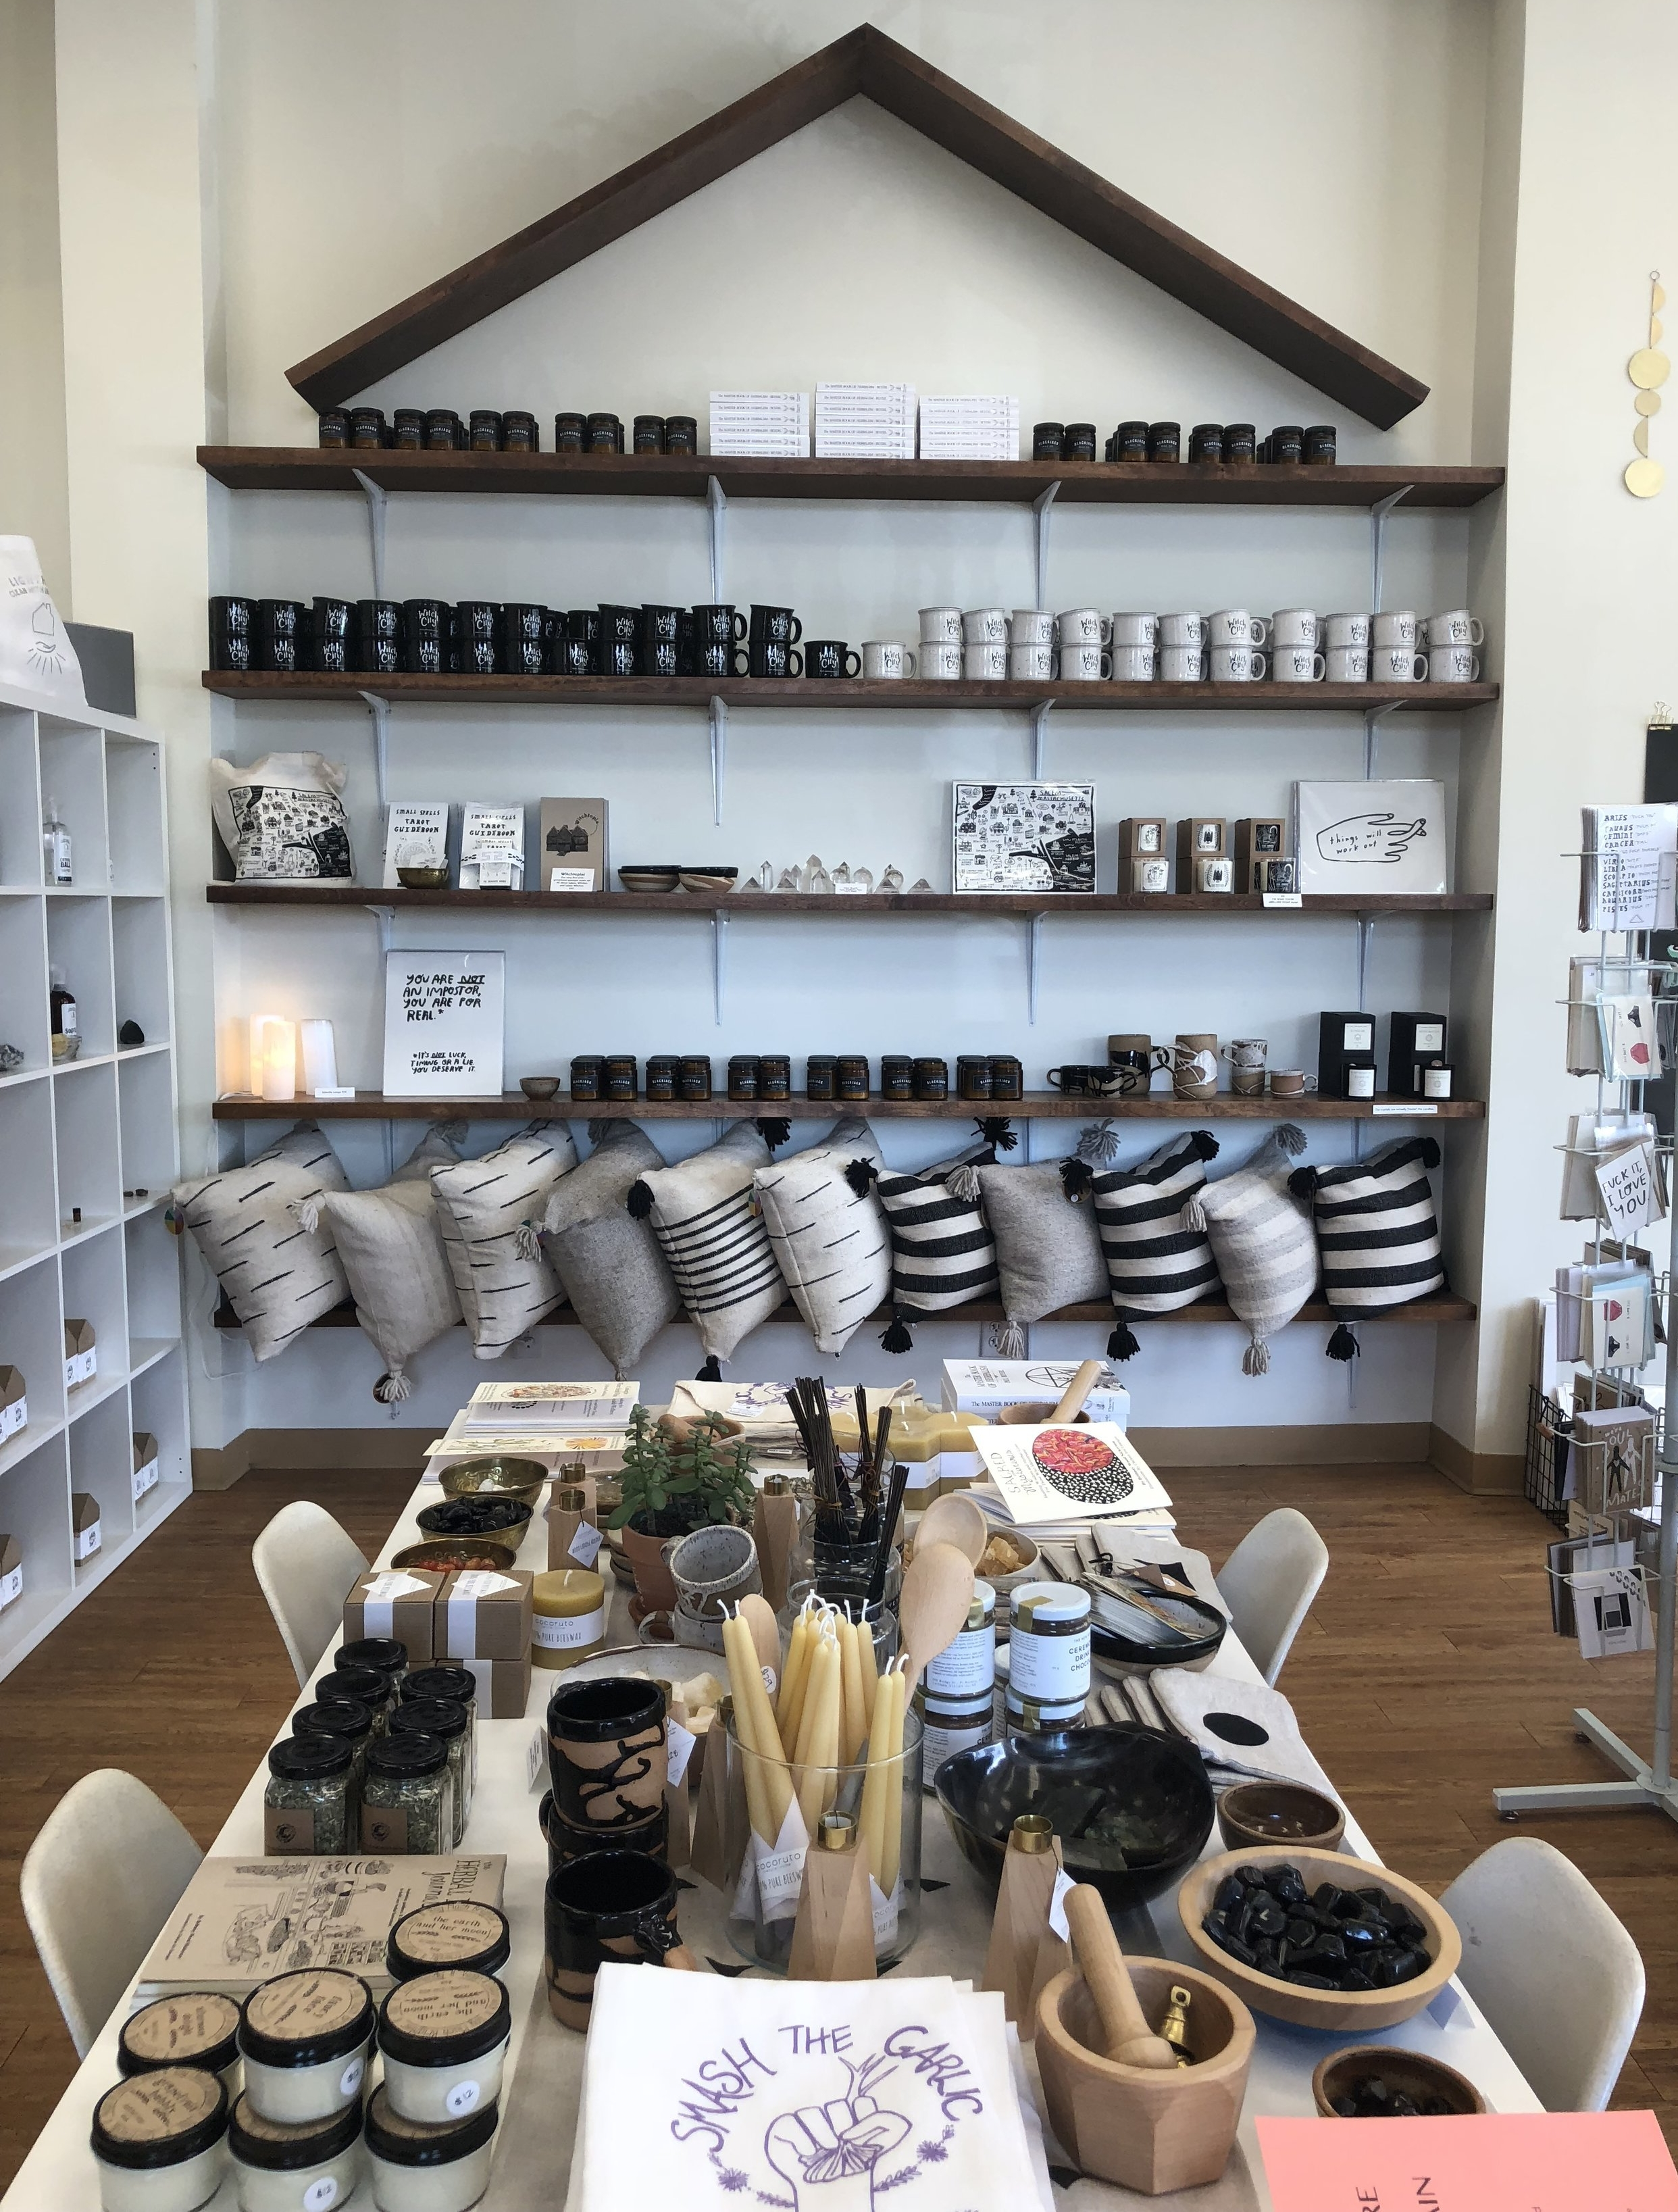 Following our tour, a few of the ladies and I decided to walk around Salem. One of the shops we popped into was  Haus Witch . The store carries handmade products from independent makers around the US. There's great smelling candles, housewares and other cute knick knacks.